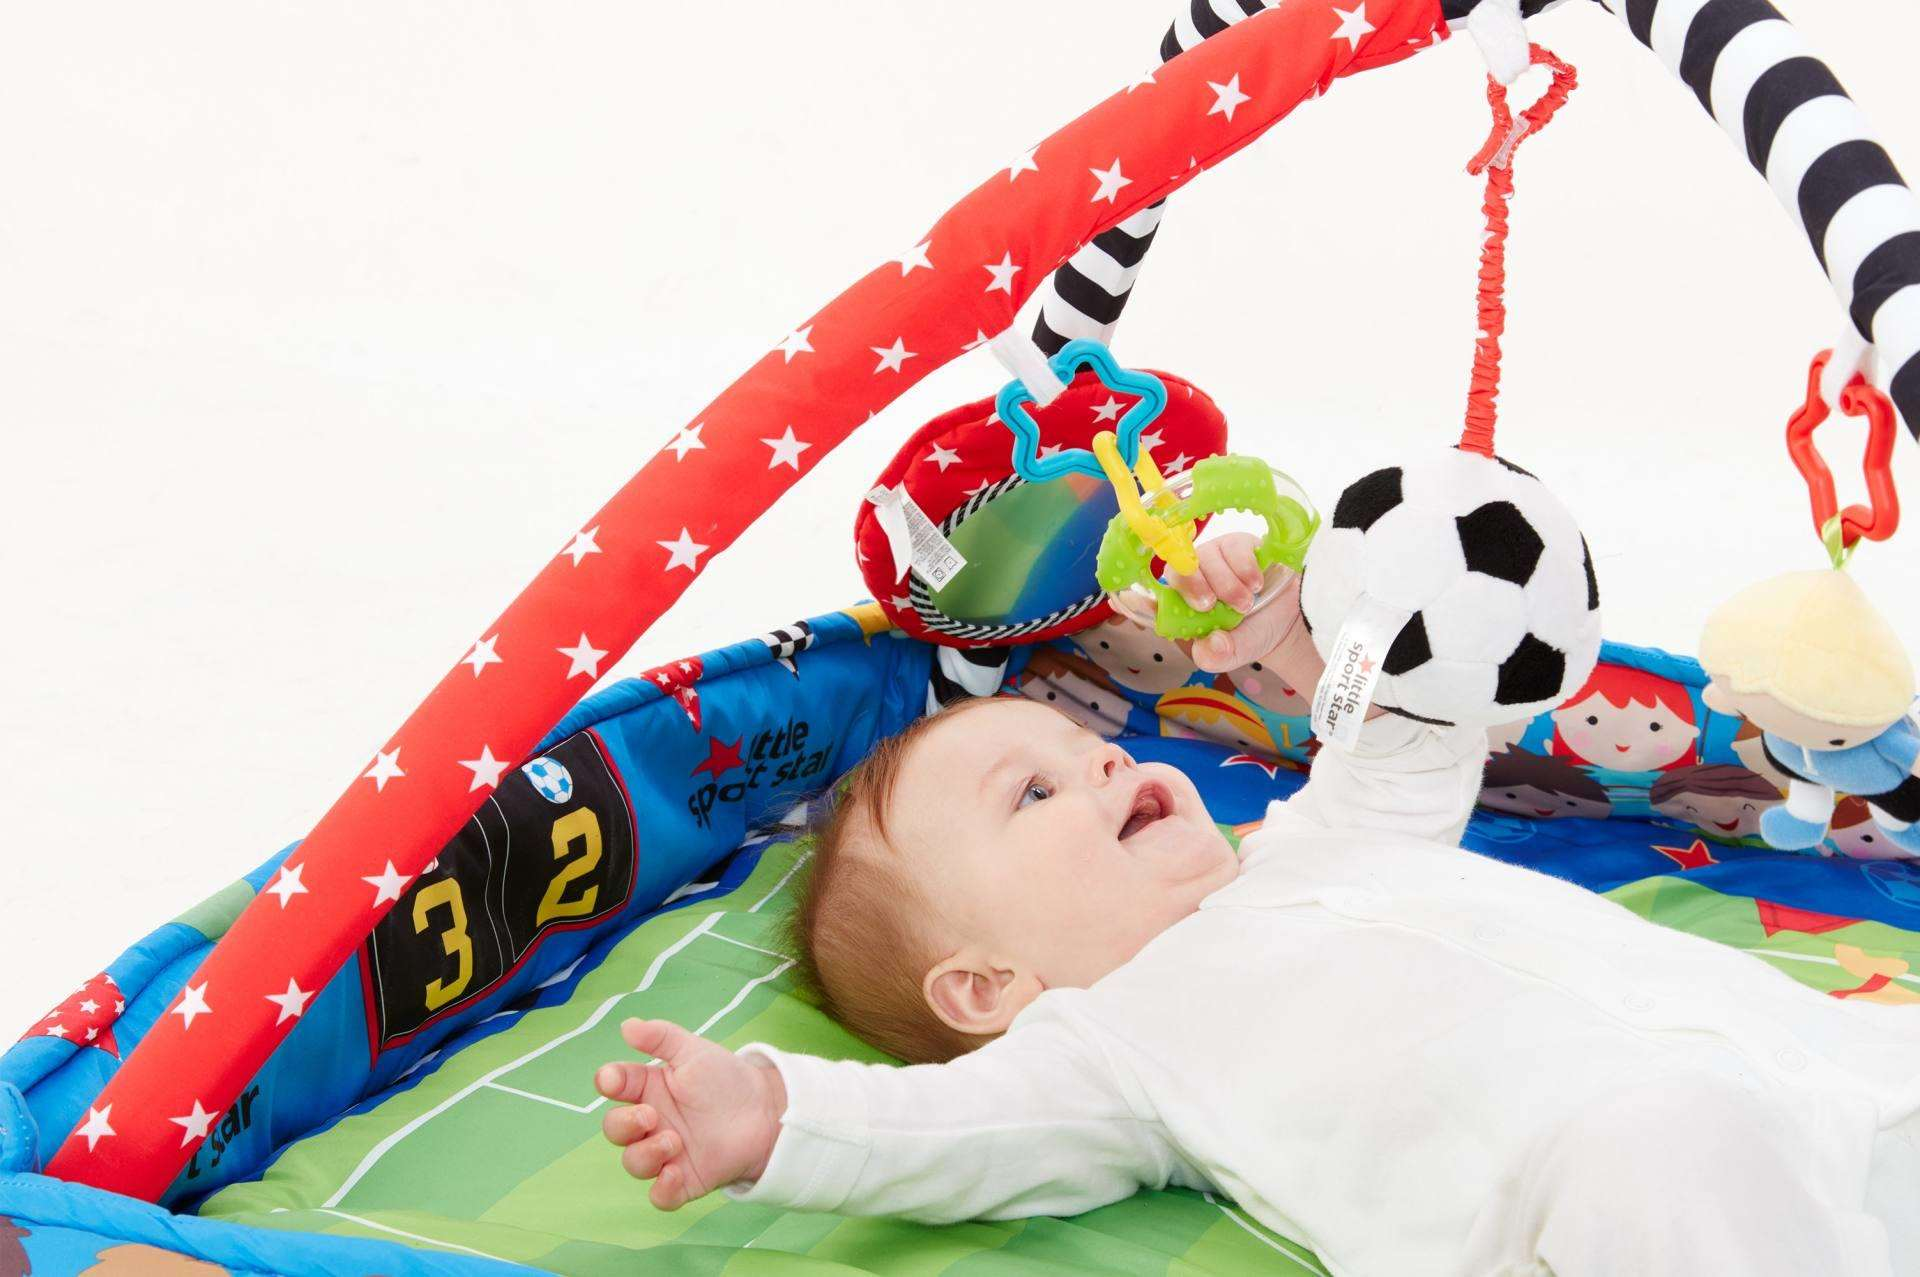 Feeling the Euro's? Get Kids Playing Sport from Newborn & WIN a football activity gym, LittleChamp Toy Shoot 2016053114502 72dpi sRGB%, lifestyle%